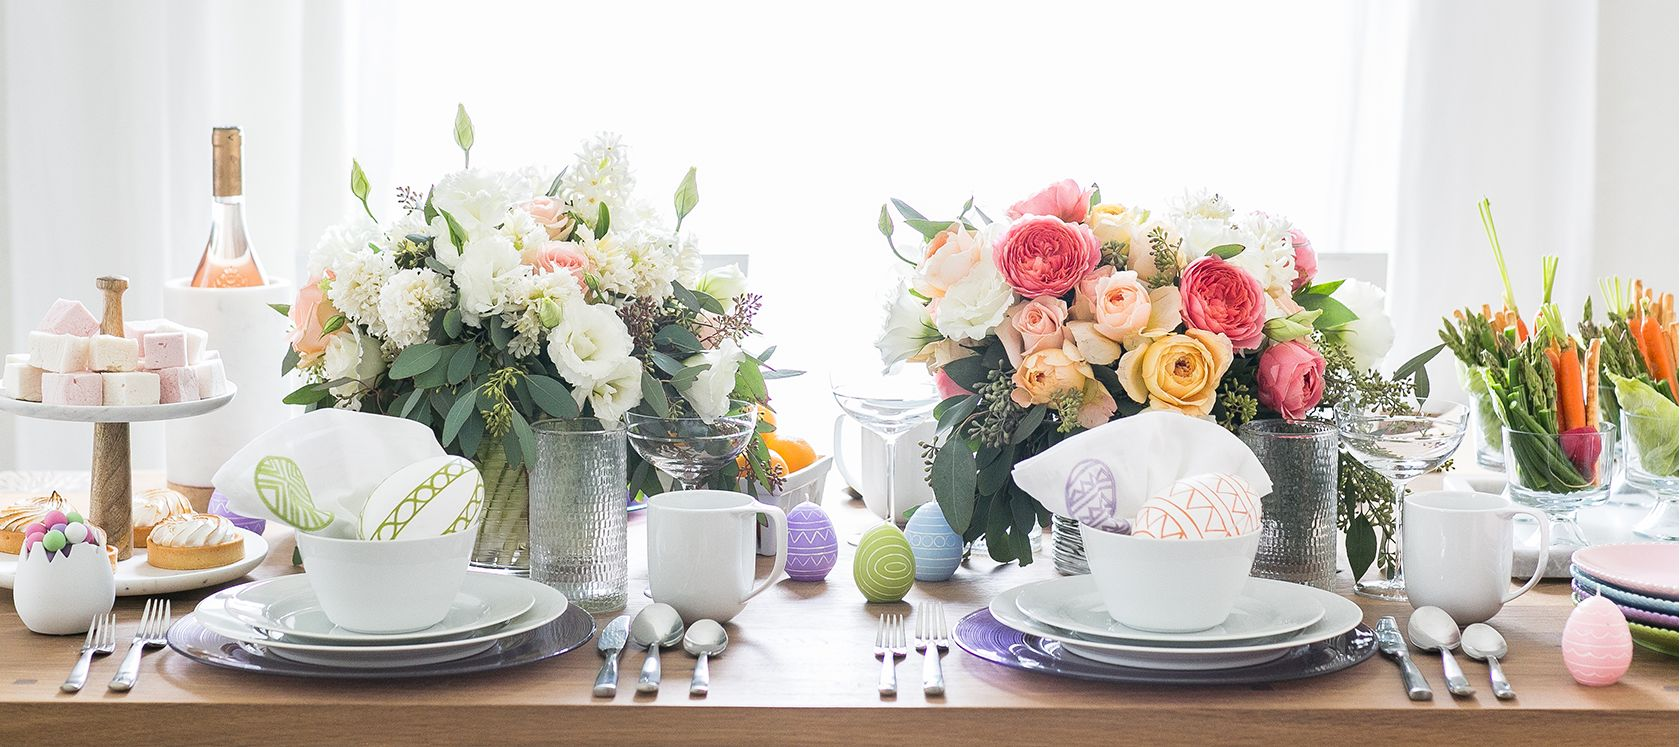 Easter Decorations And Centerpieces Crate Barrel